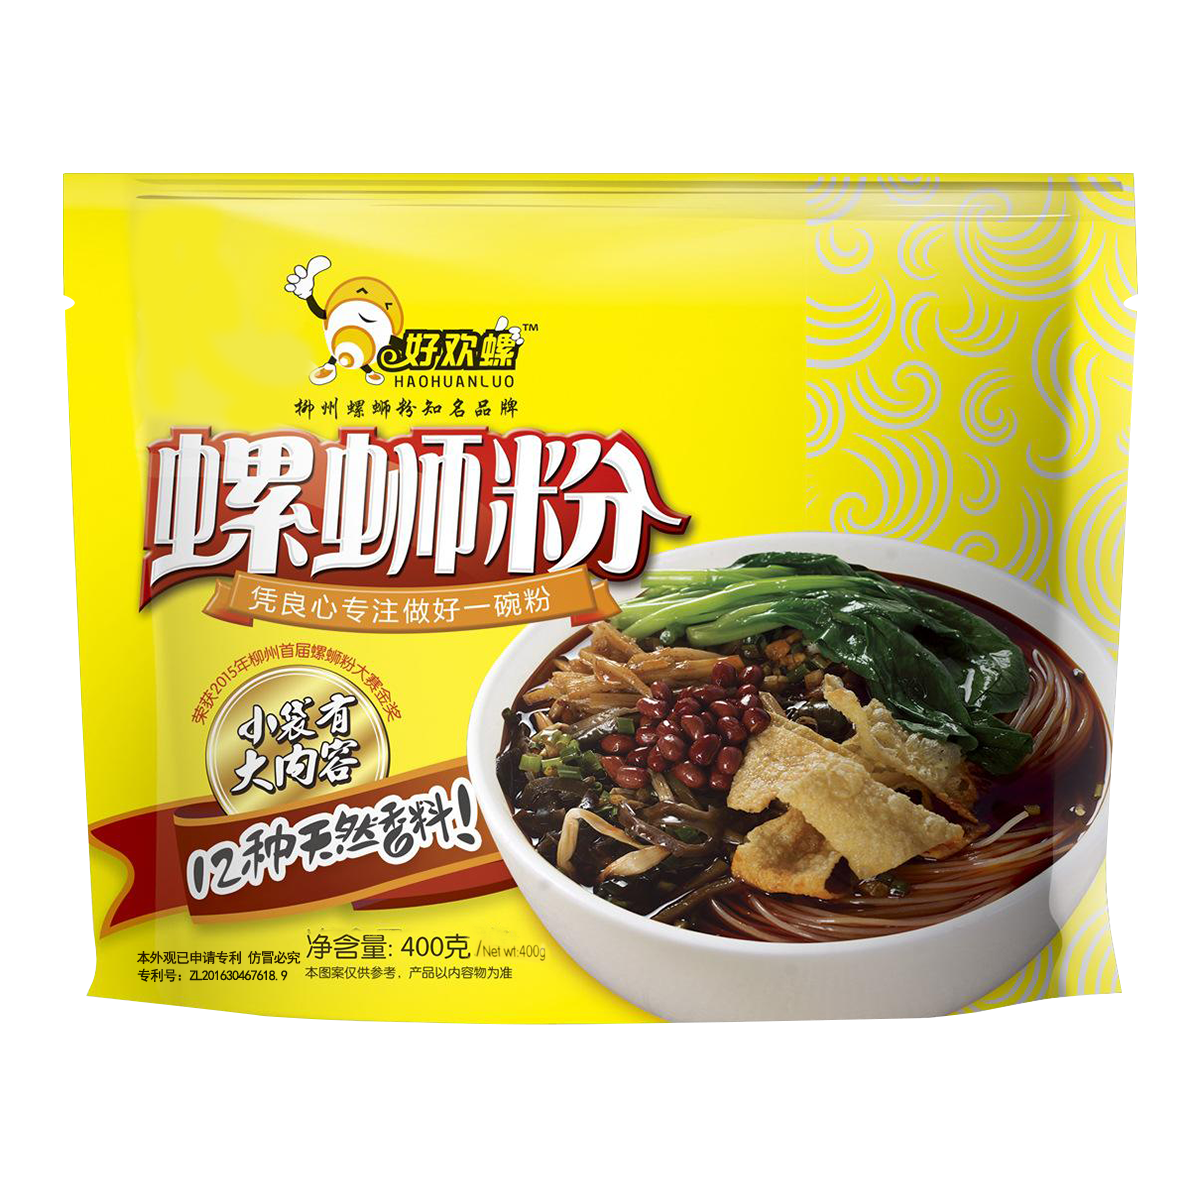 Yamibuy.com:Customer reviews:HAOHUANLUO Instant Spicy Rice Noodle 400g